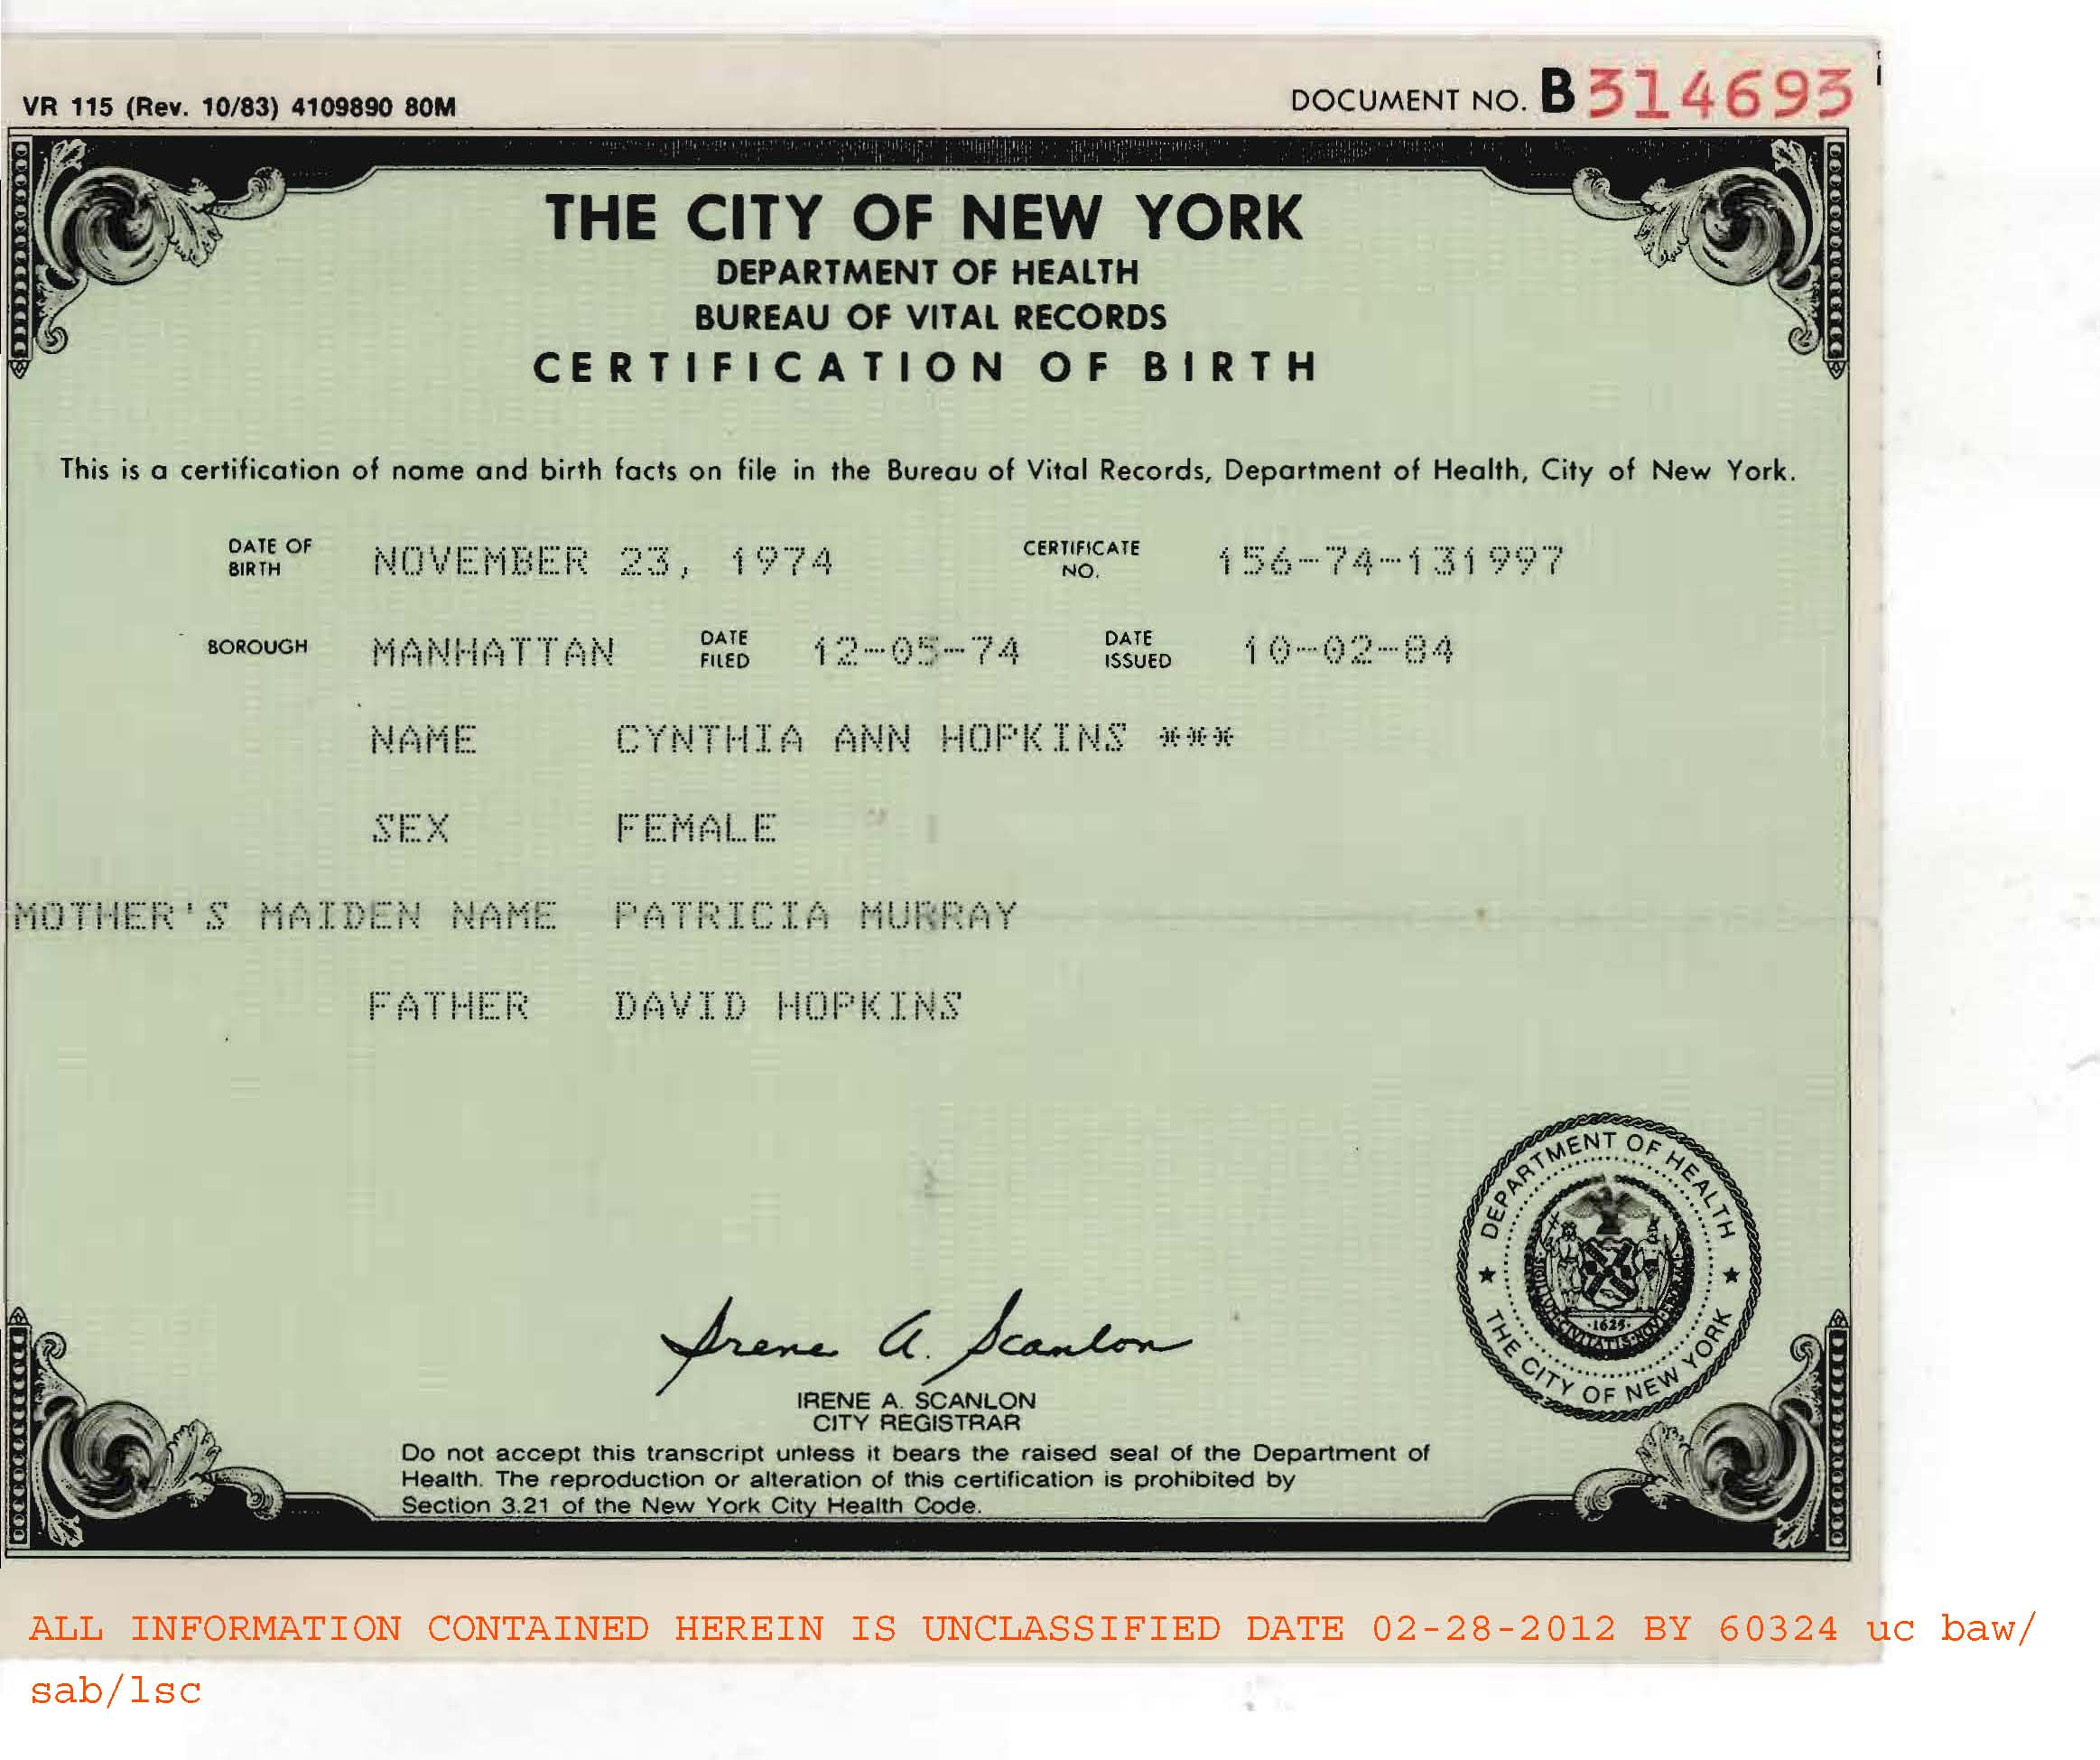 Fraudulent Birth Certificate Of